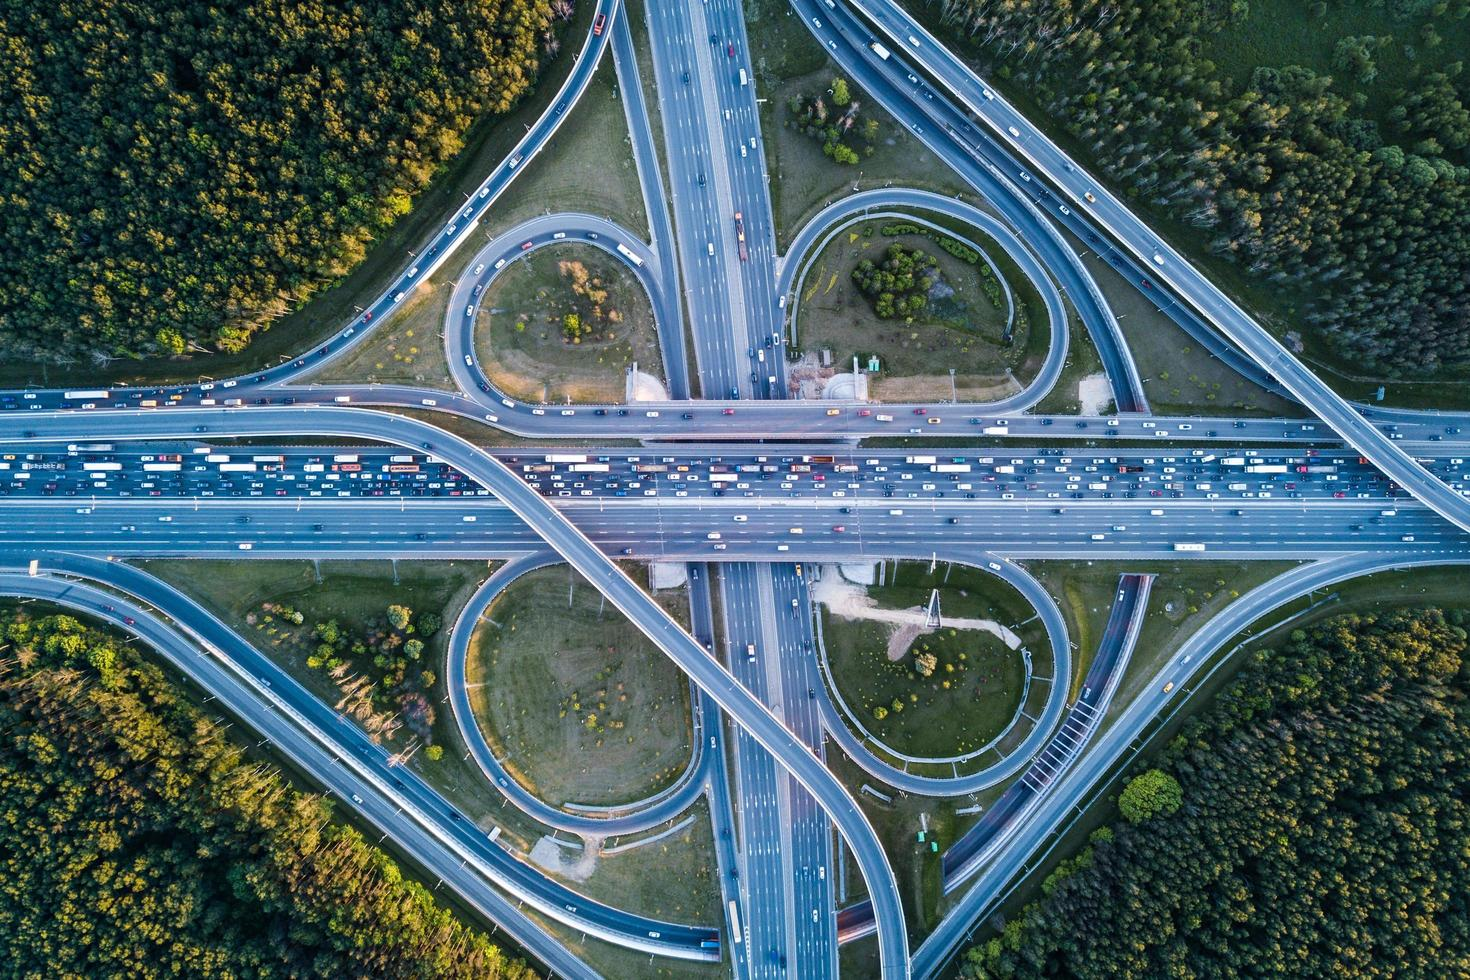 Aerial photography of freeway photo